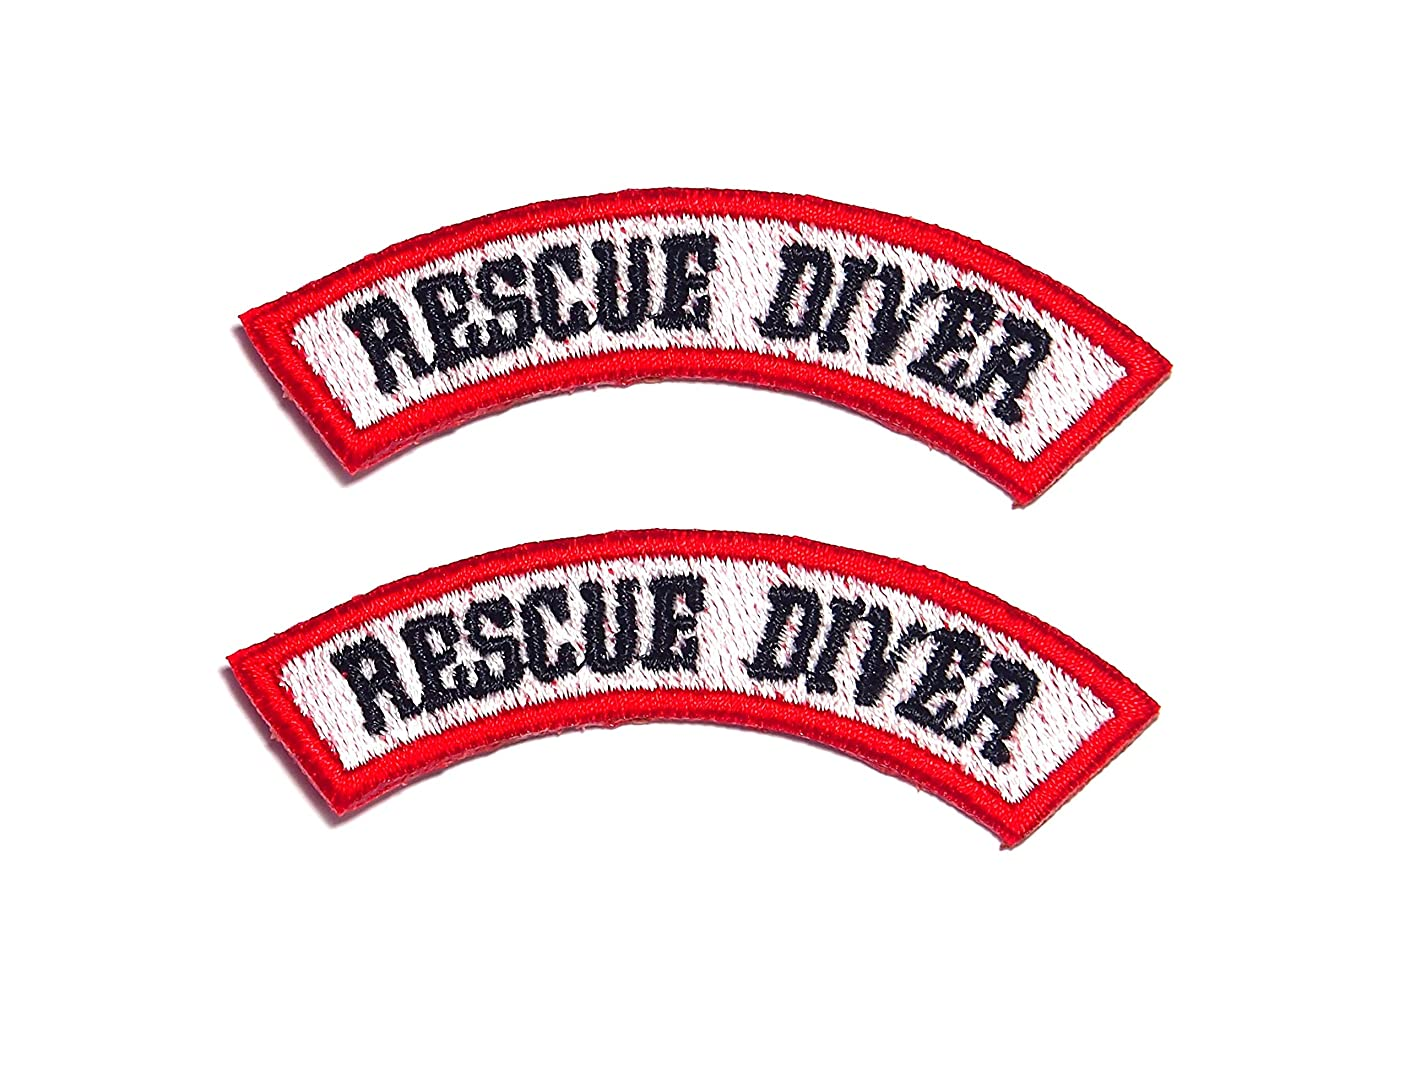 AstroG@ BP21 2 X Rescue Diver Scuba Diving EMT EMS Embroidered Morale Patch 7.5 X 1.5 cm for Sew-On Only